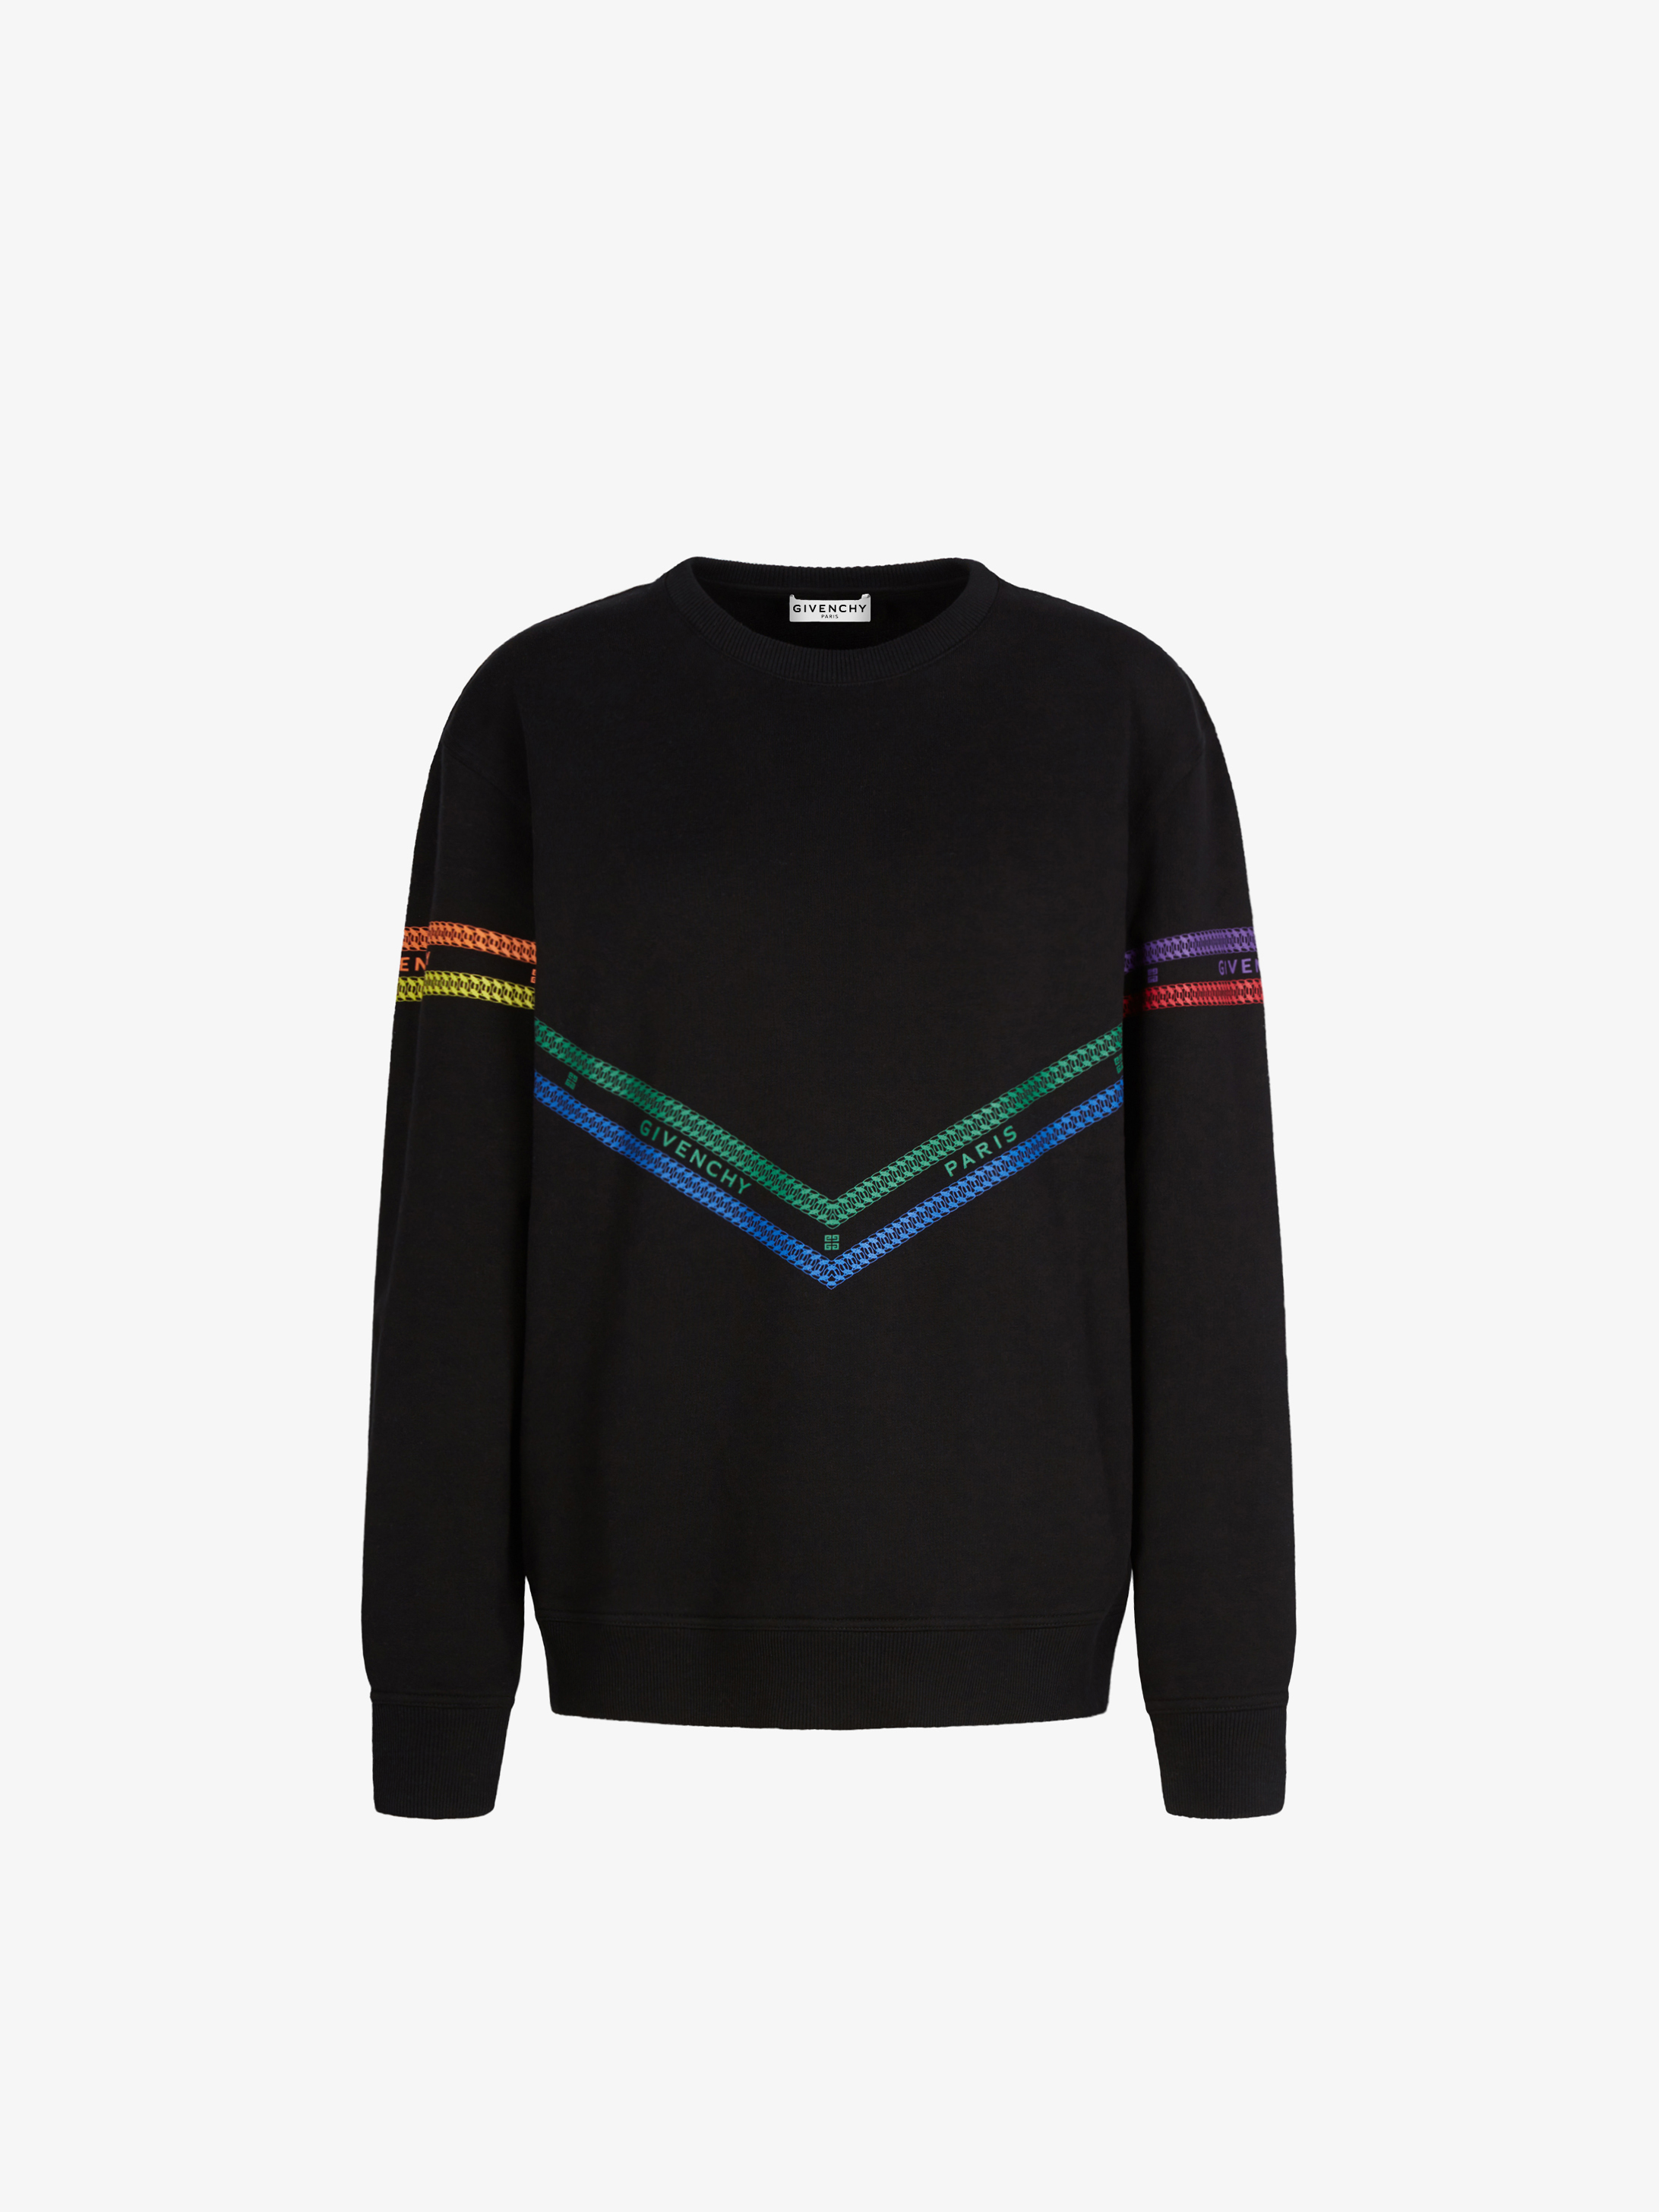 GIVENCHY multicolored Chain printed sweatshirt